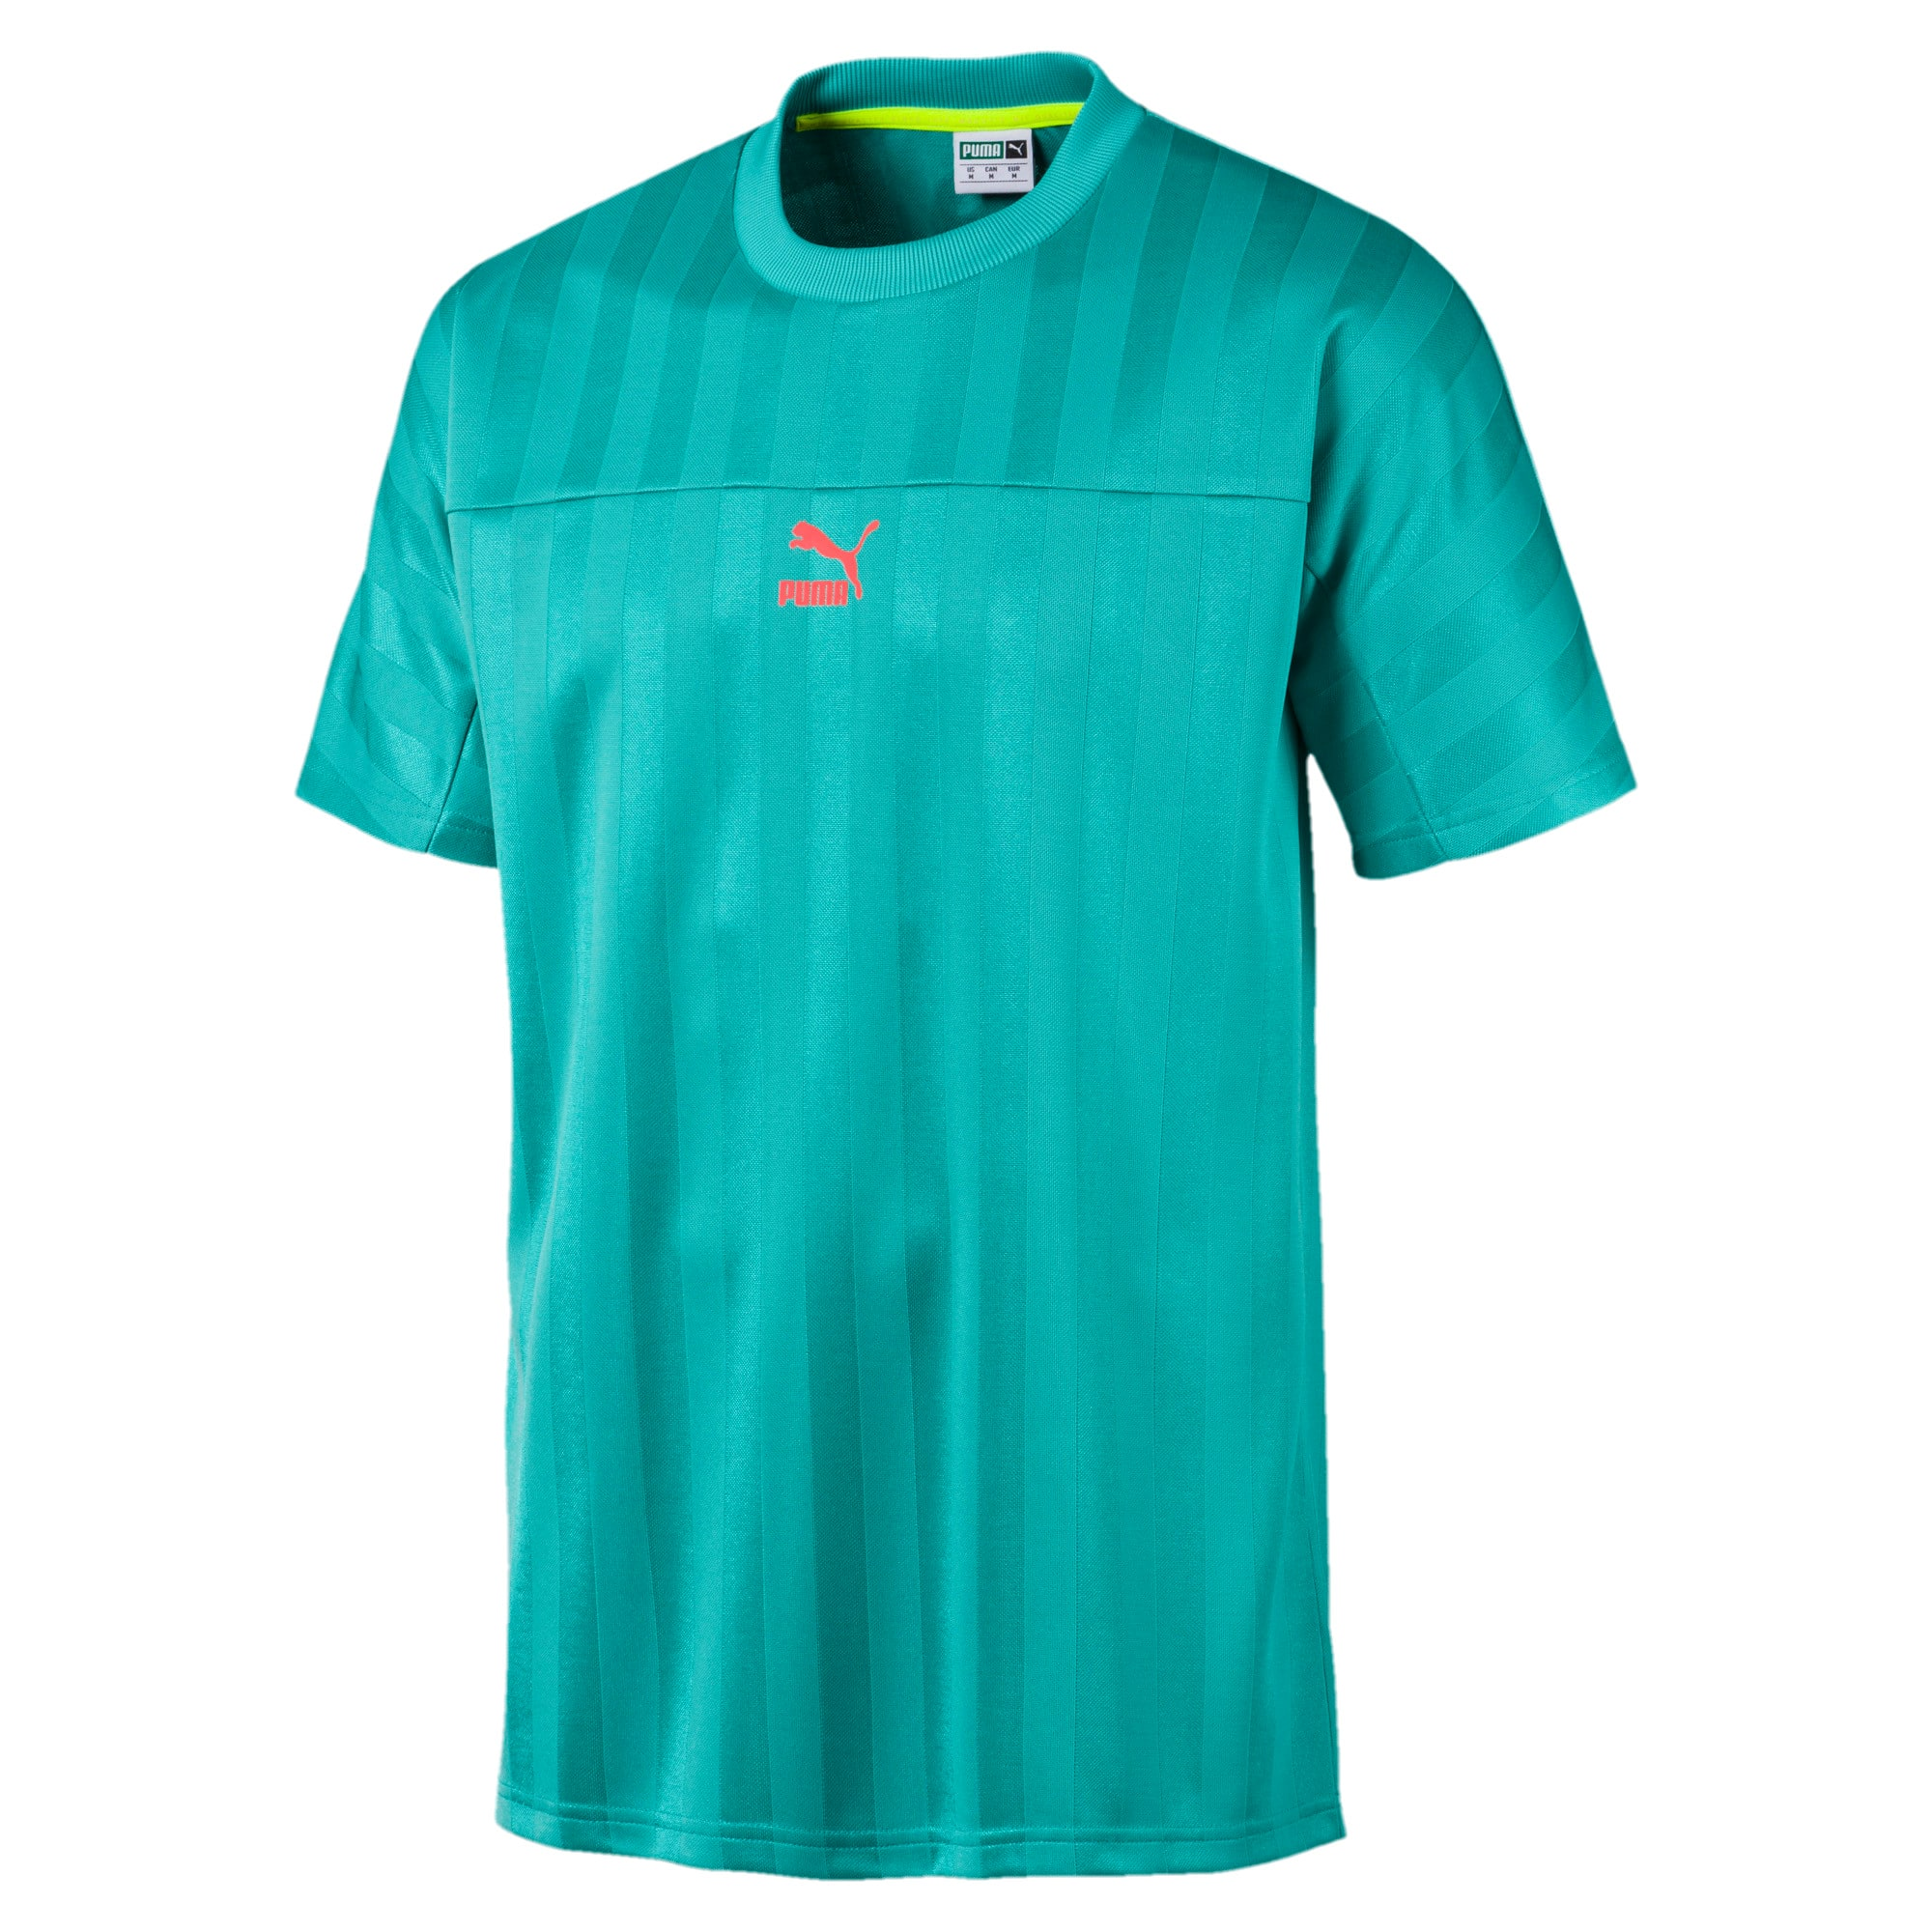 luXTG Men's Tee, Blue Turquoise, large